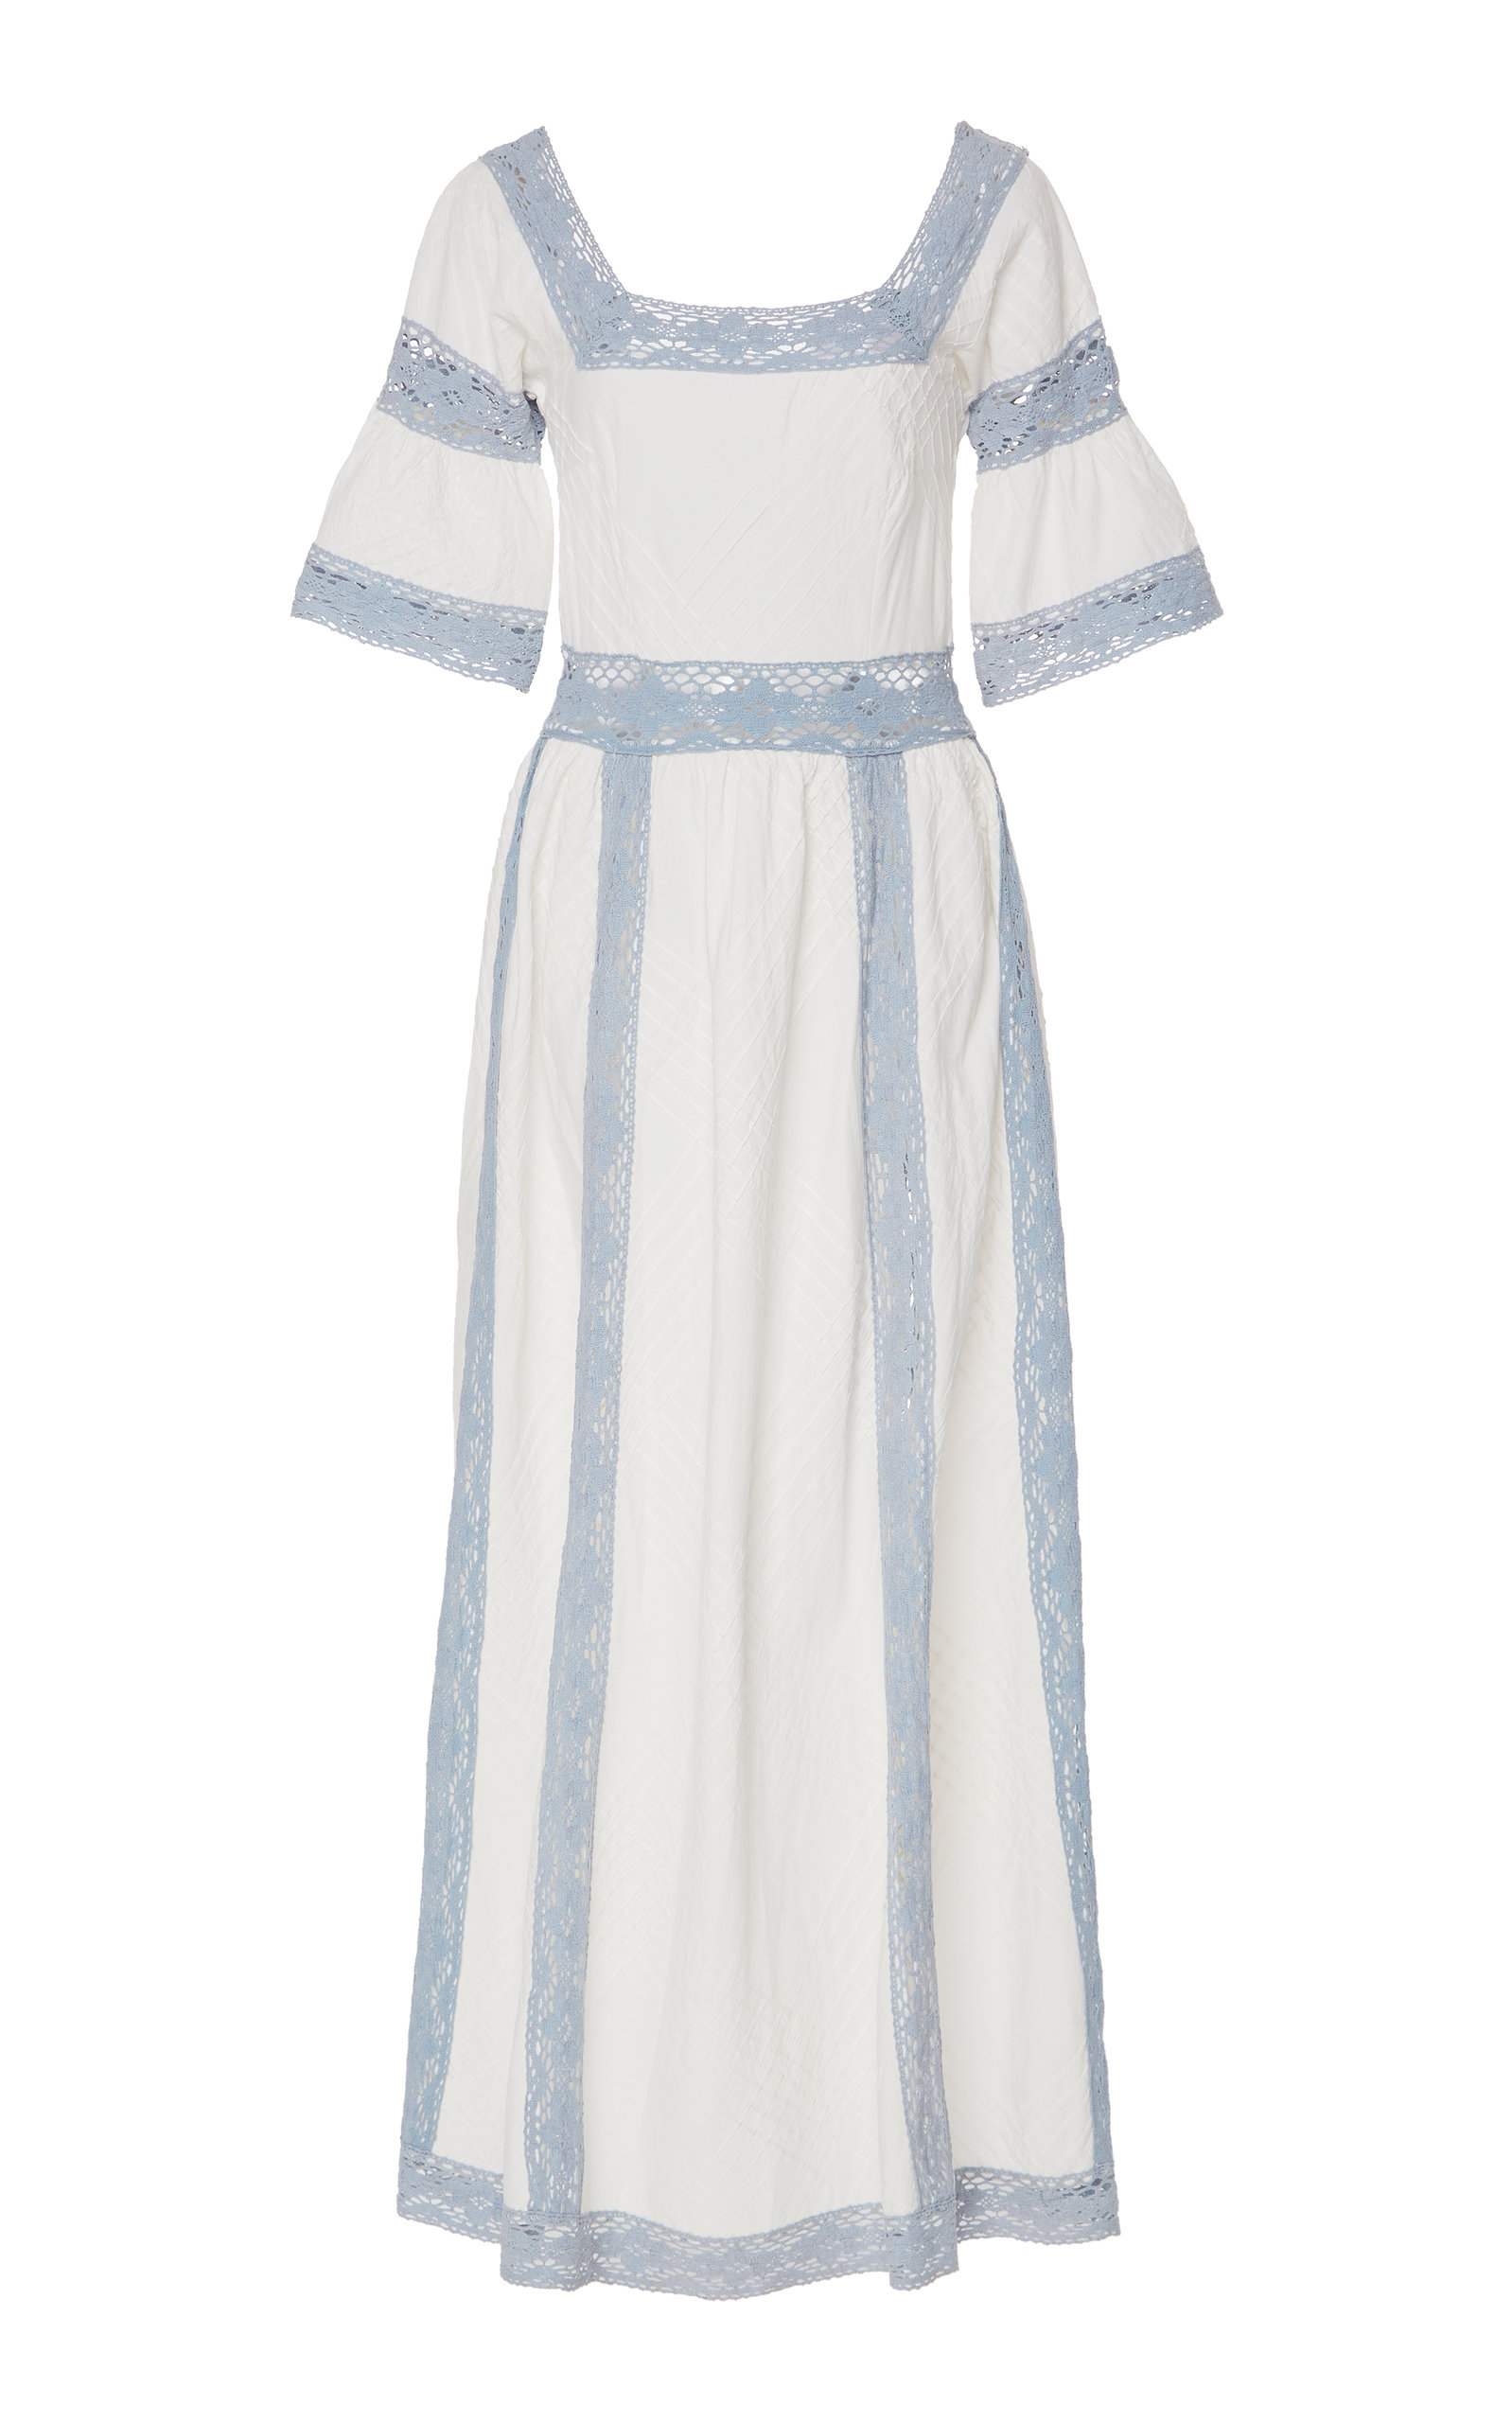 Buy Luisa Beccaria Lace Trimmed Maxi Dress online, shop Luisa Beccaria at the best price